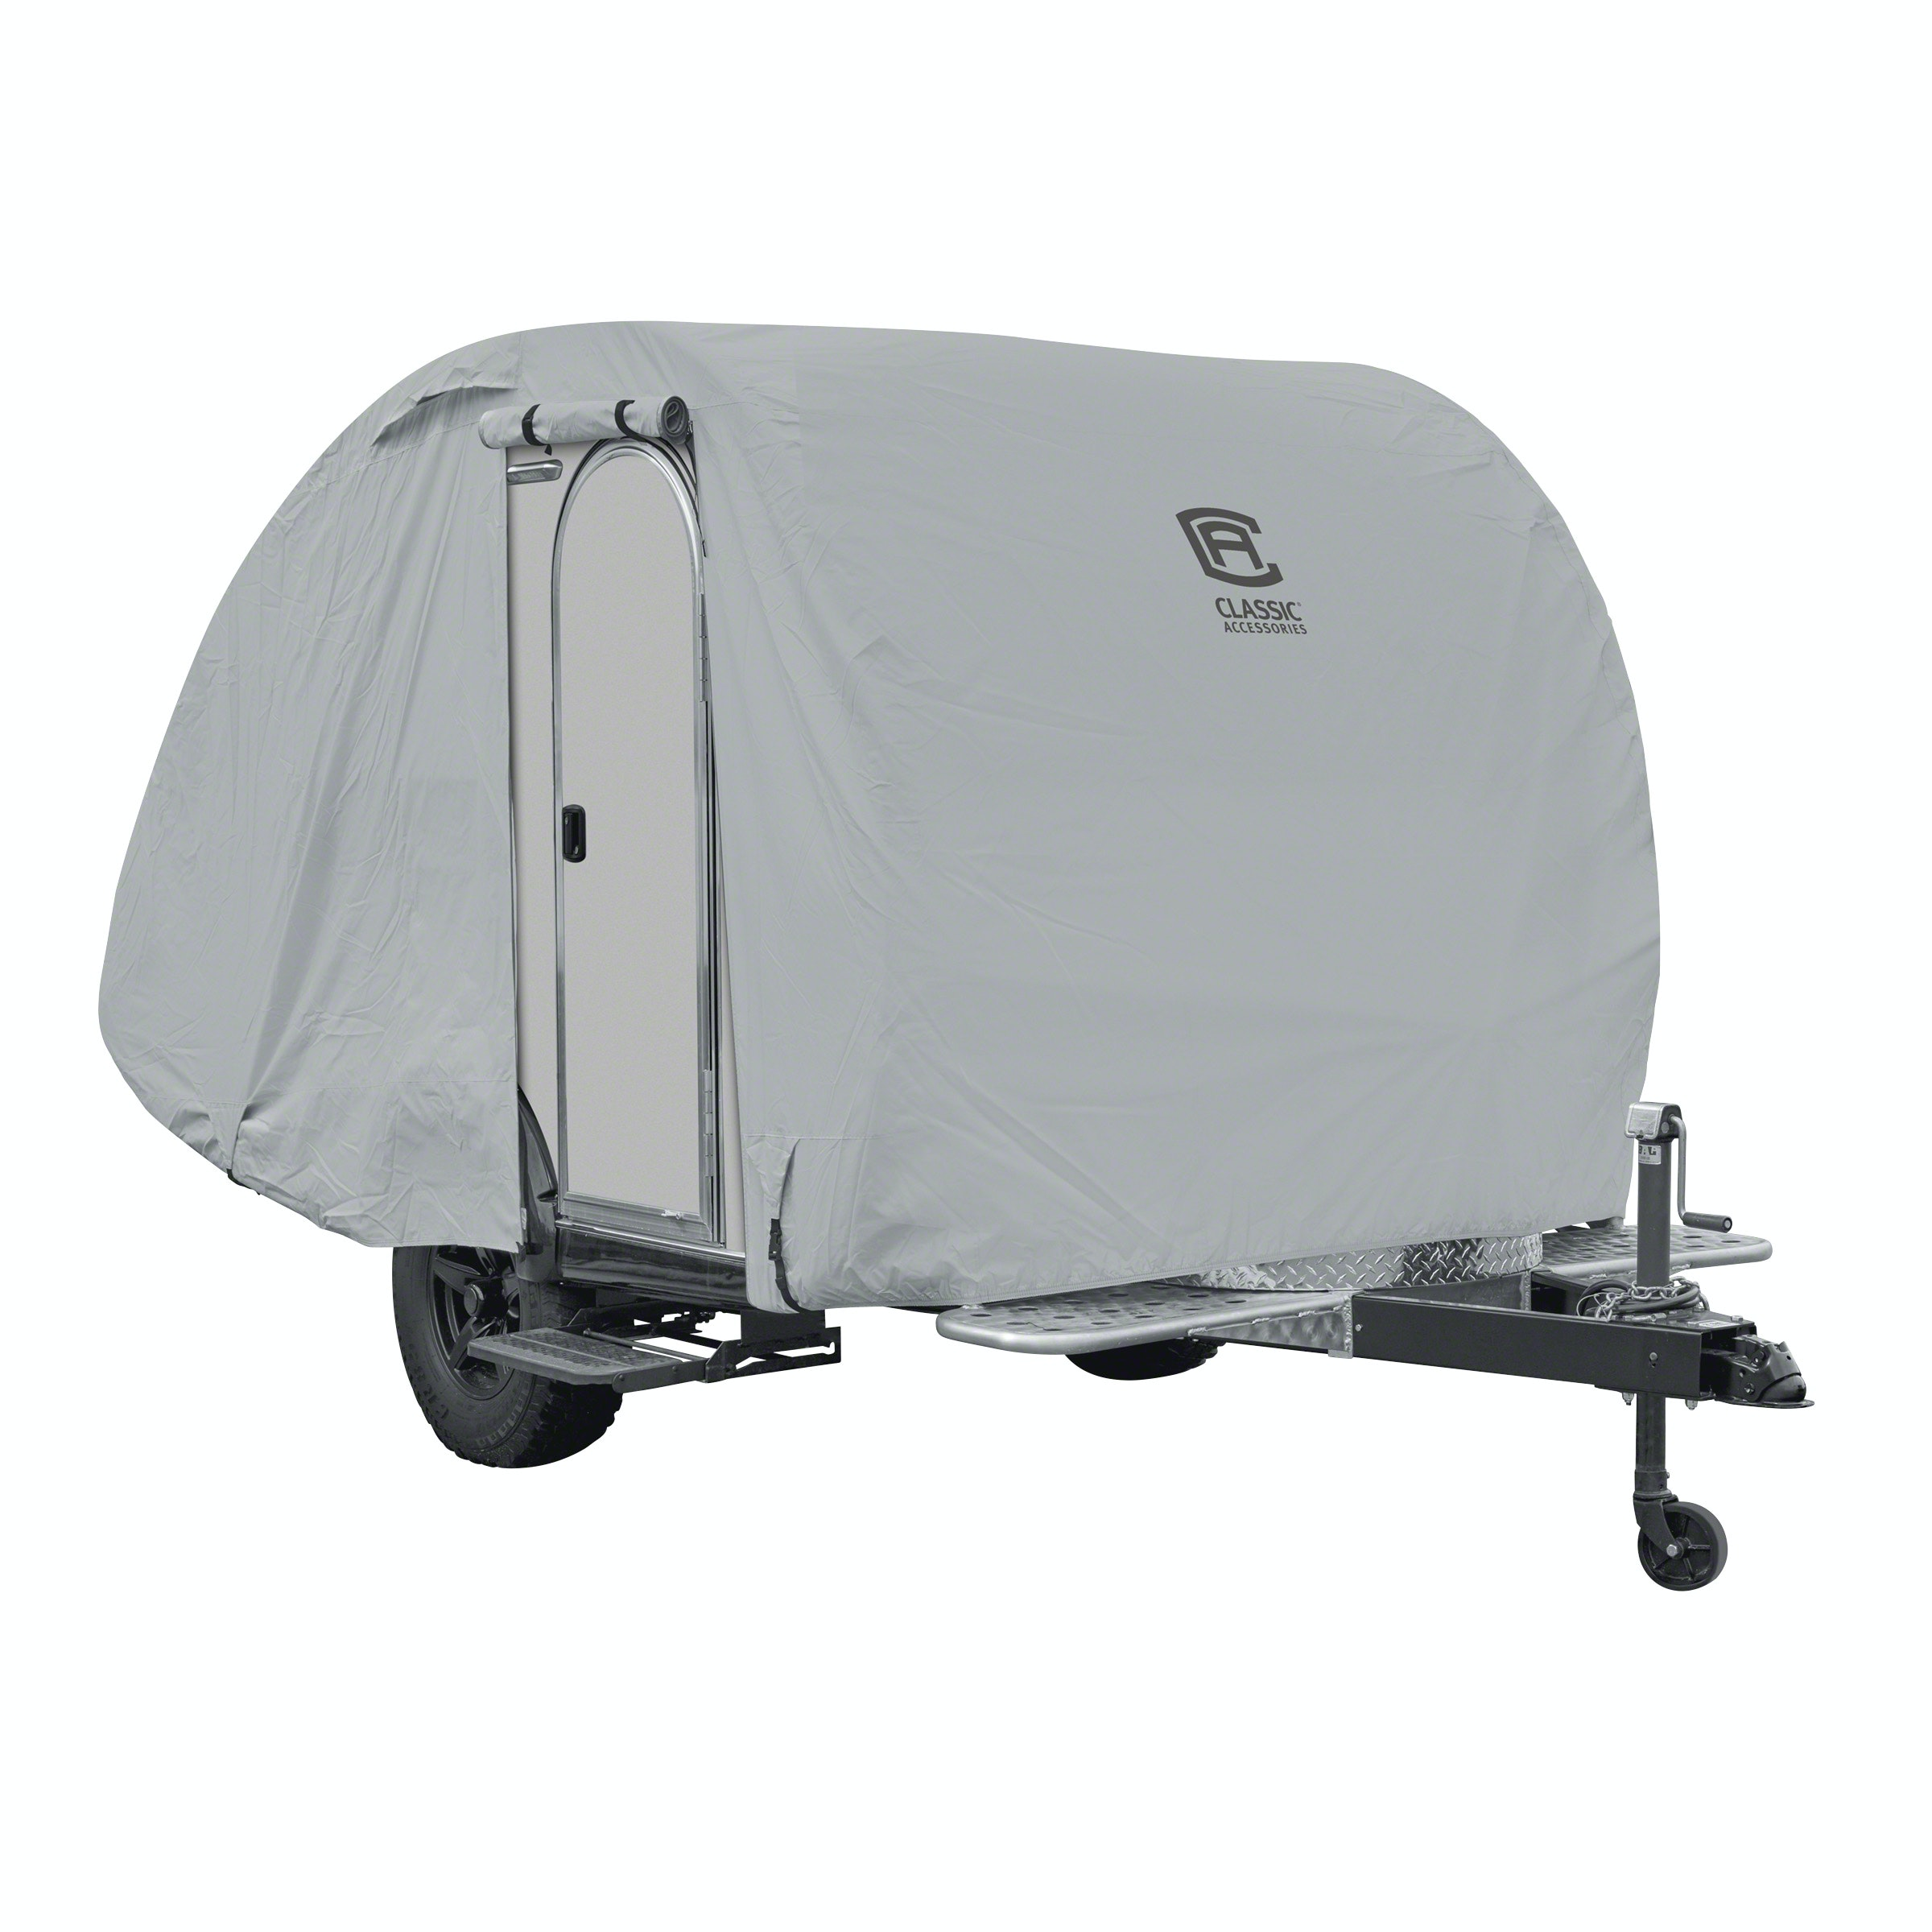 Product Image for Classic Classic PermaPRO Up to 8' Teardrop Trailer RV Cover Rv